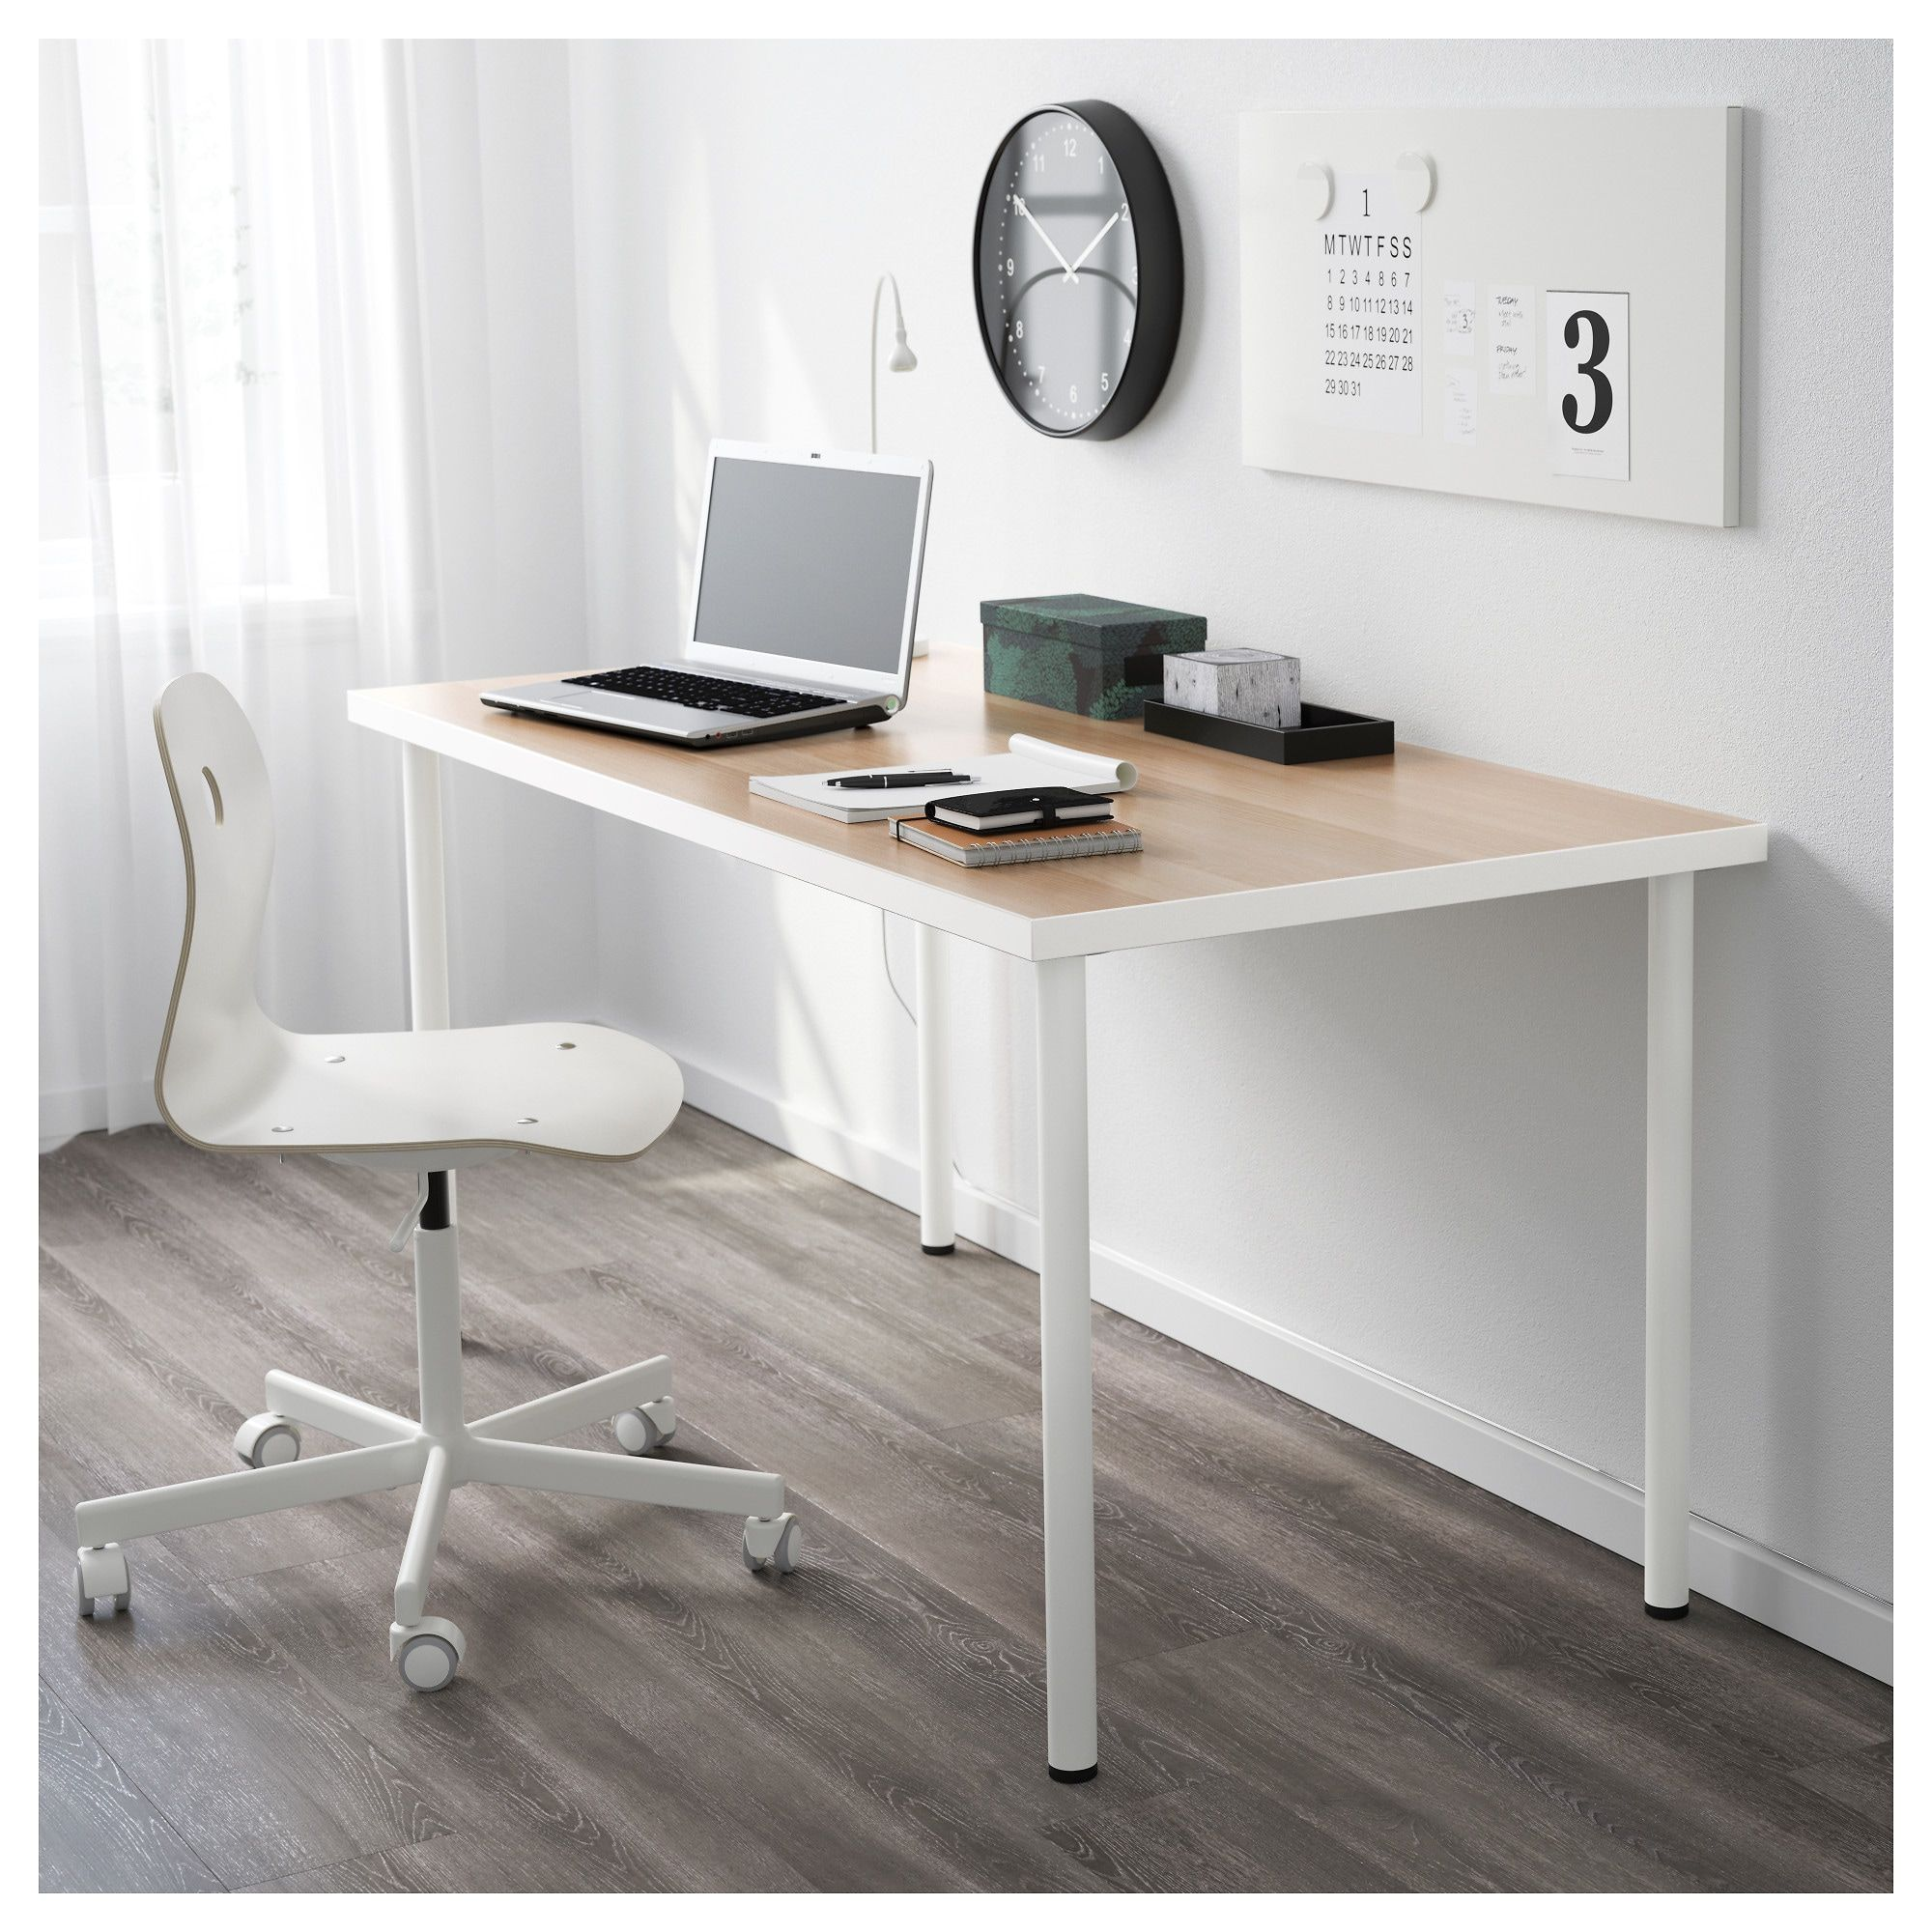 Linnmon Adils Table White White Stained Oak Effect White 59x29 1 2 Ikea Ikea Table Hack Ikea Home Office Furniture